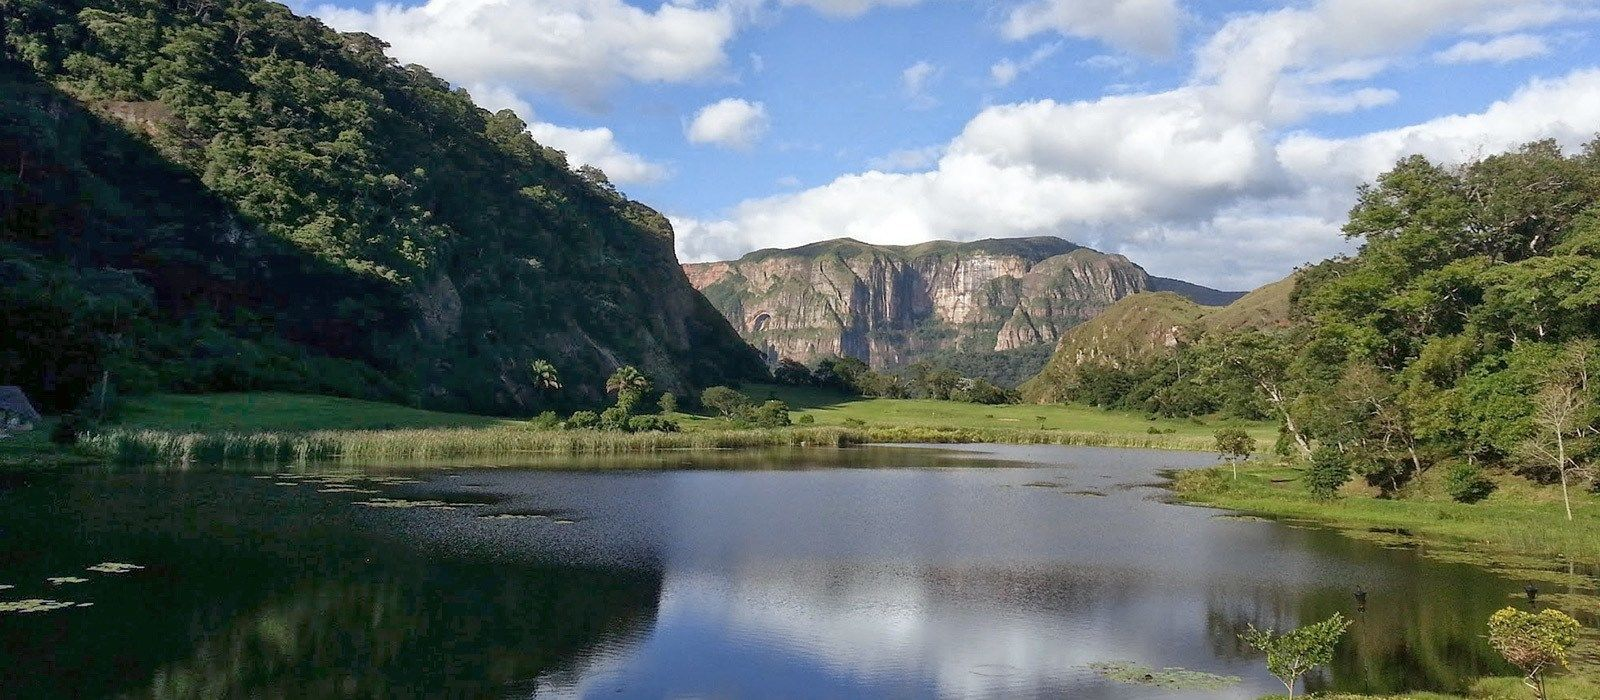 Bolivia: Landscapes and Culture Tour Trip 1